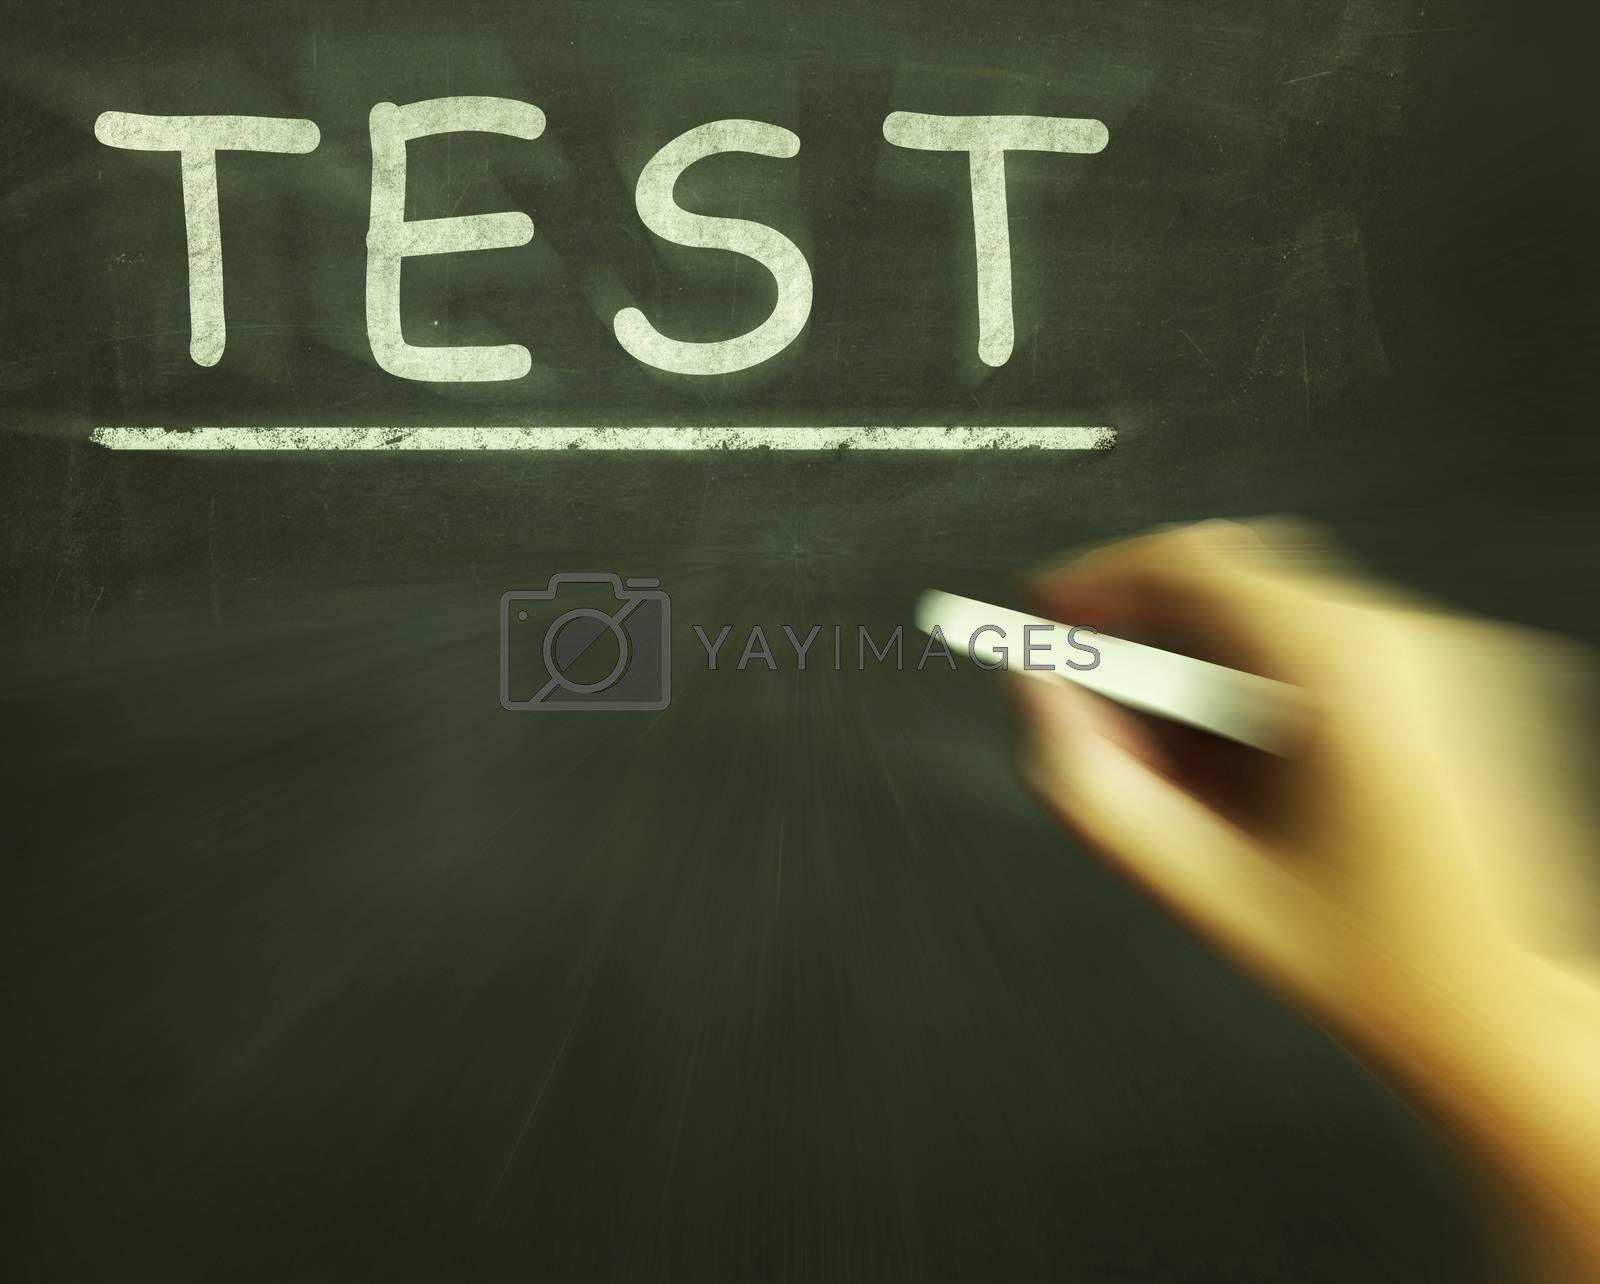 Test Chalk Shows Assessment Exam And Grade by stuartmiles